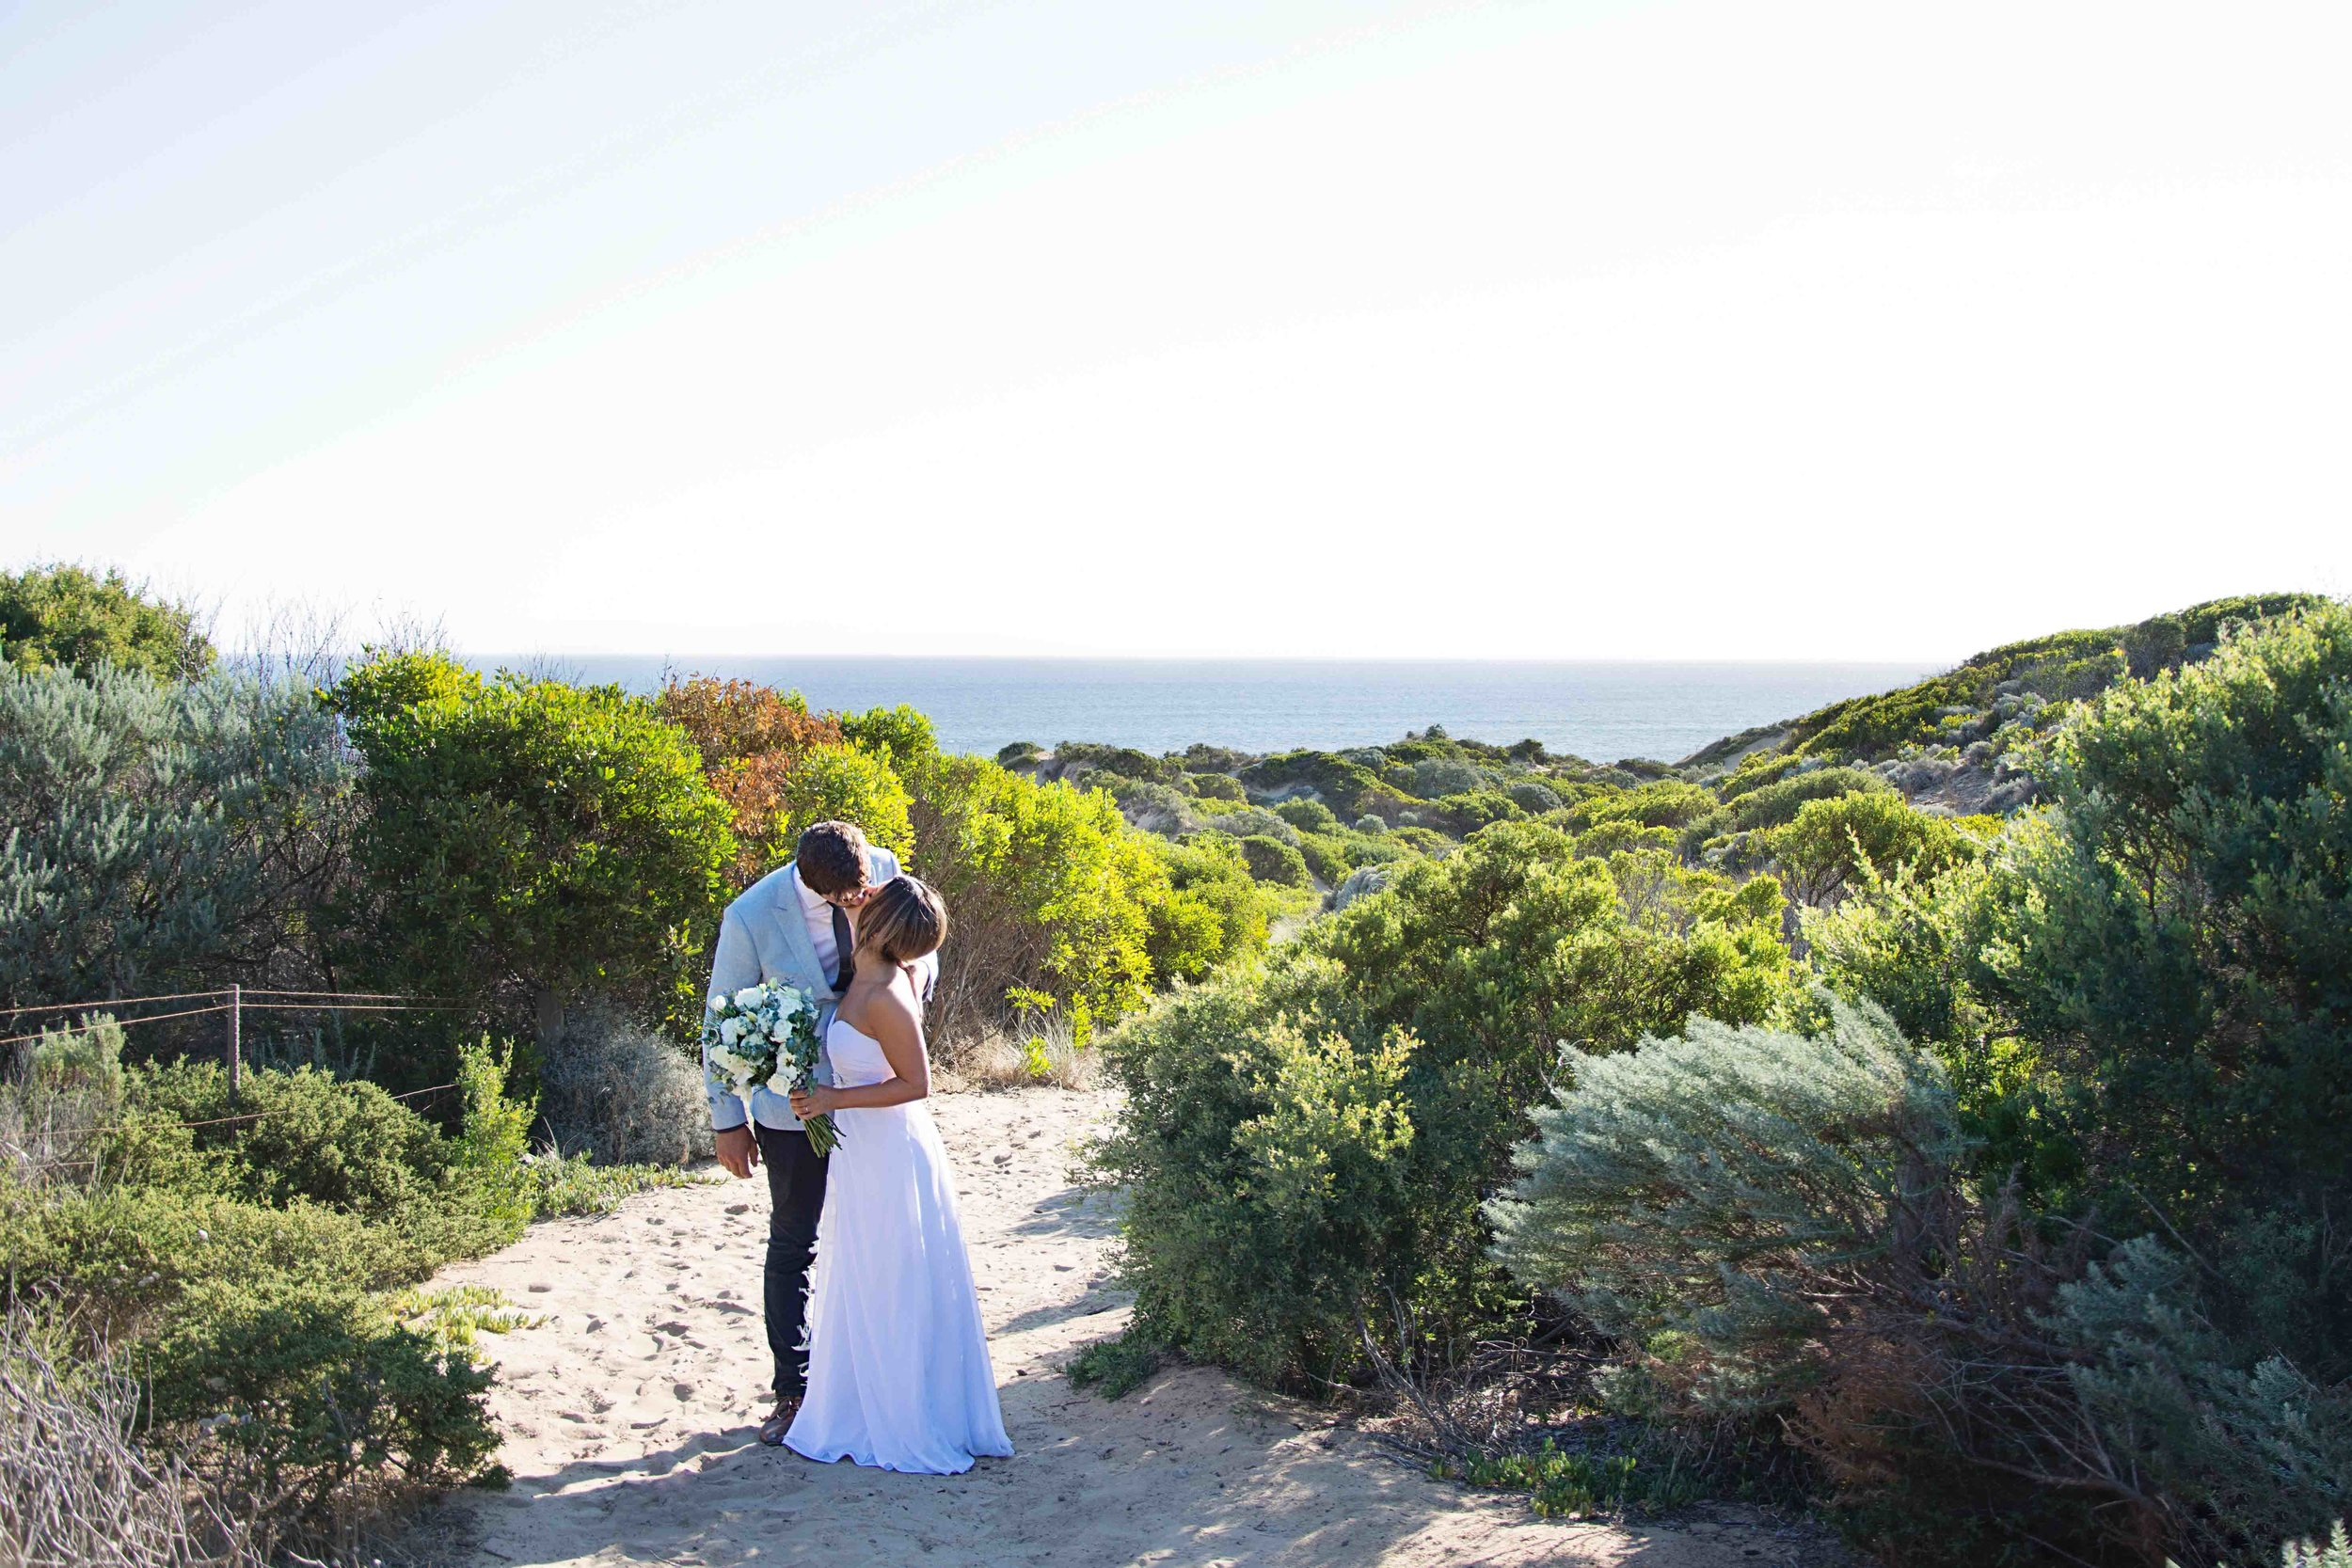 Carmela and Mark found this beautiful beach spot that was only a few minutes drive from their venue.